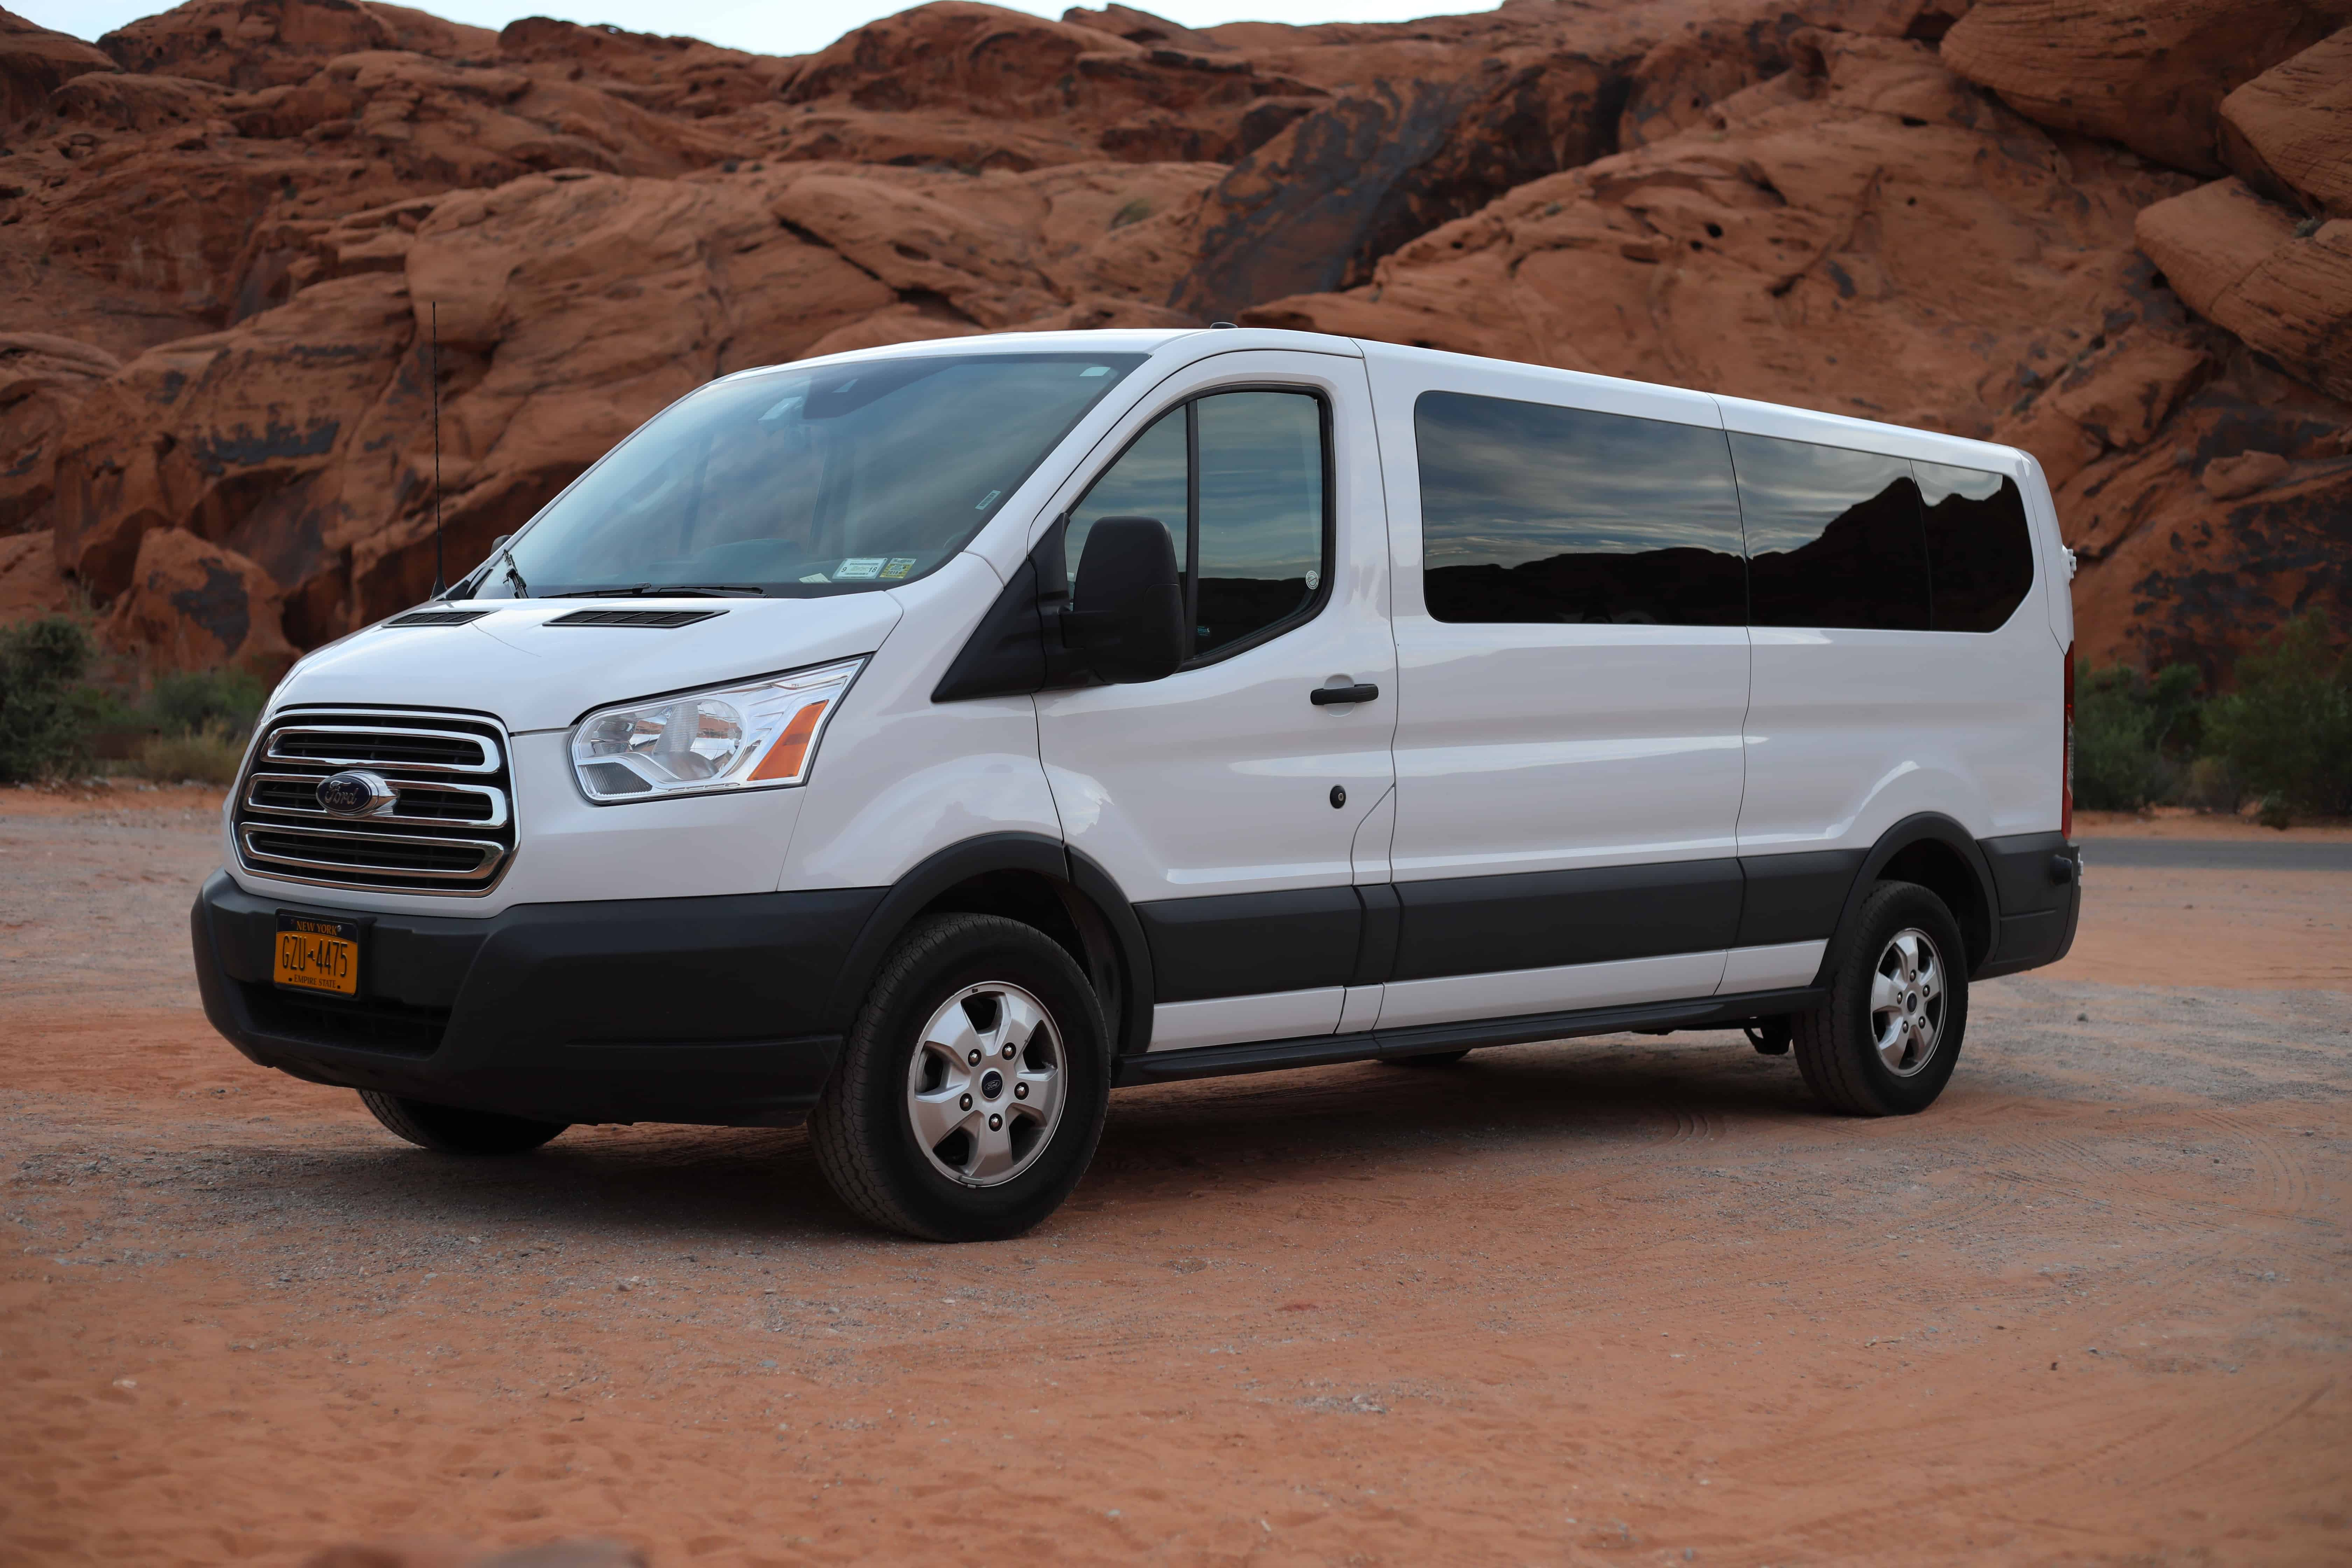 TransitWorks Recalls Ford Transit and Dodge Ram Vehicles For Rear Seat Defect